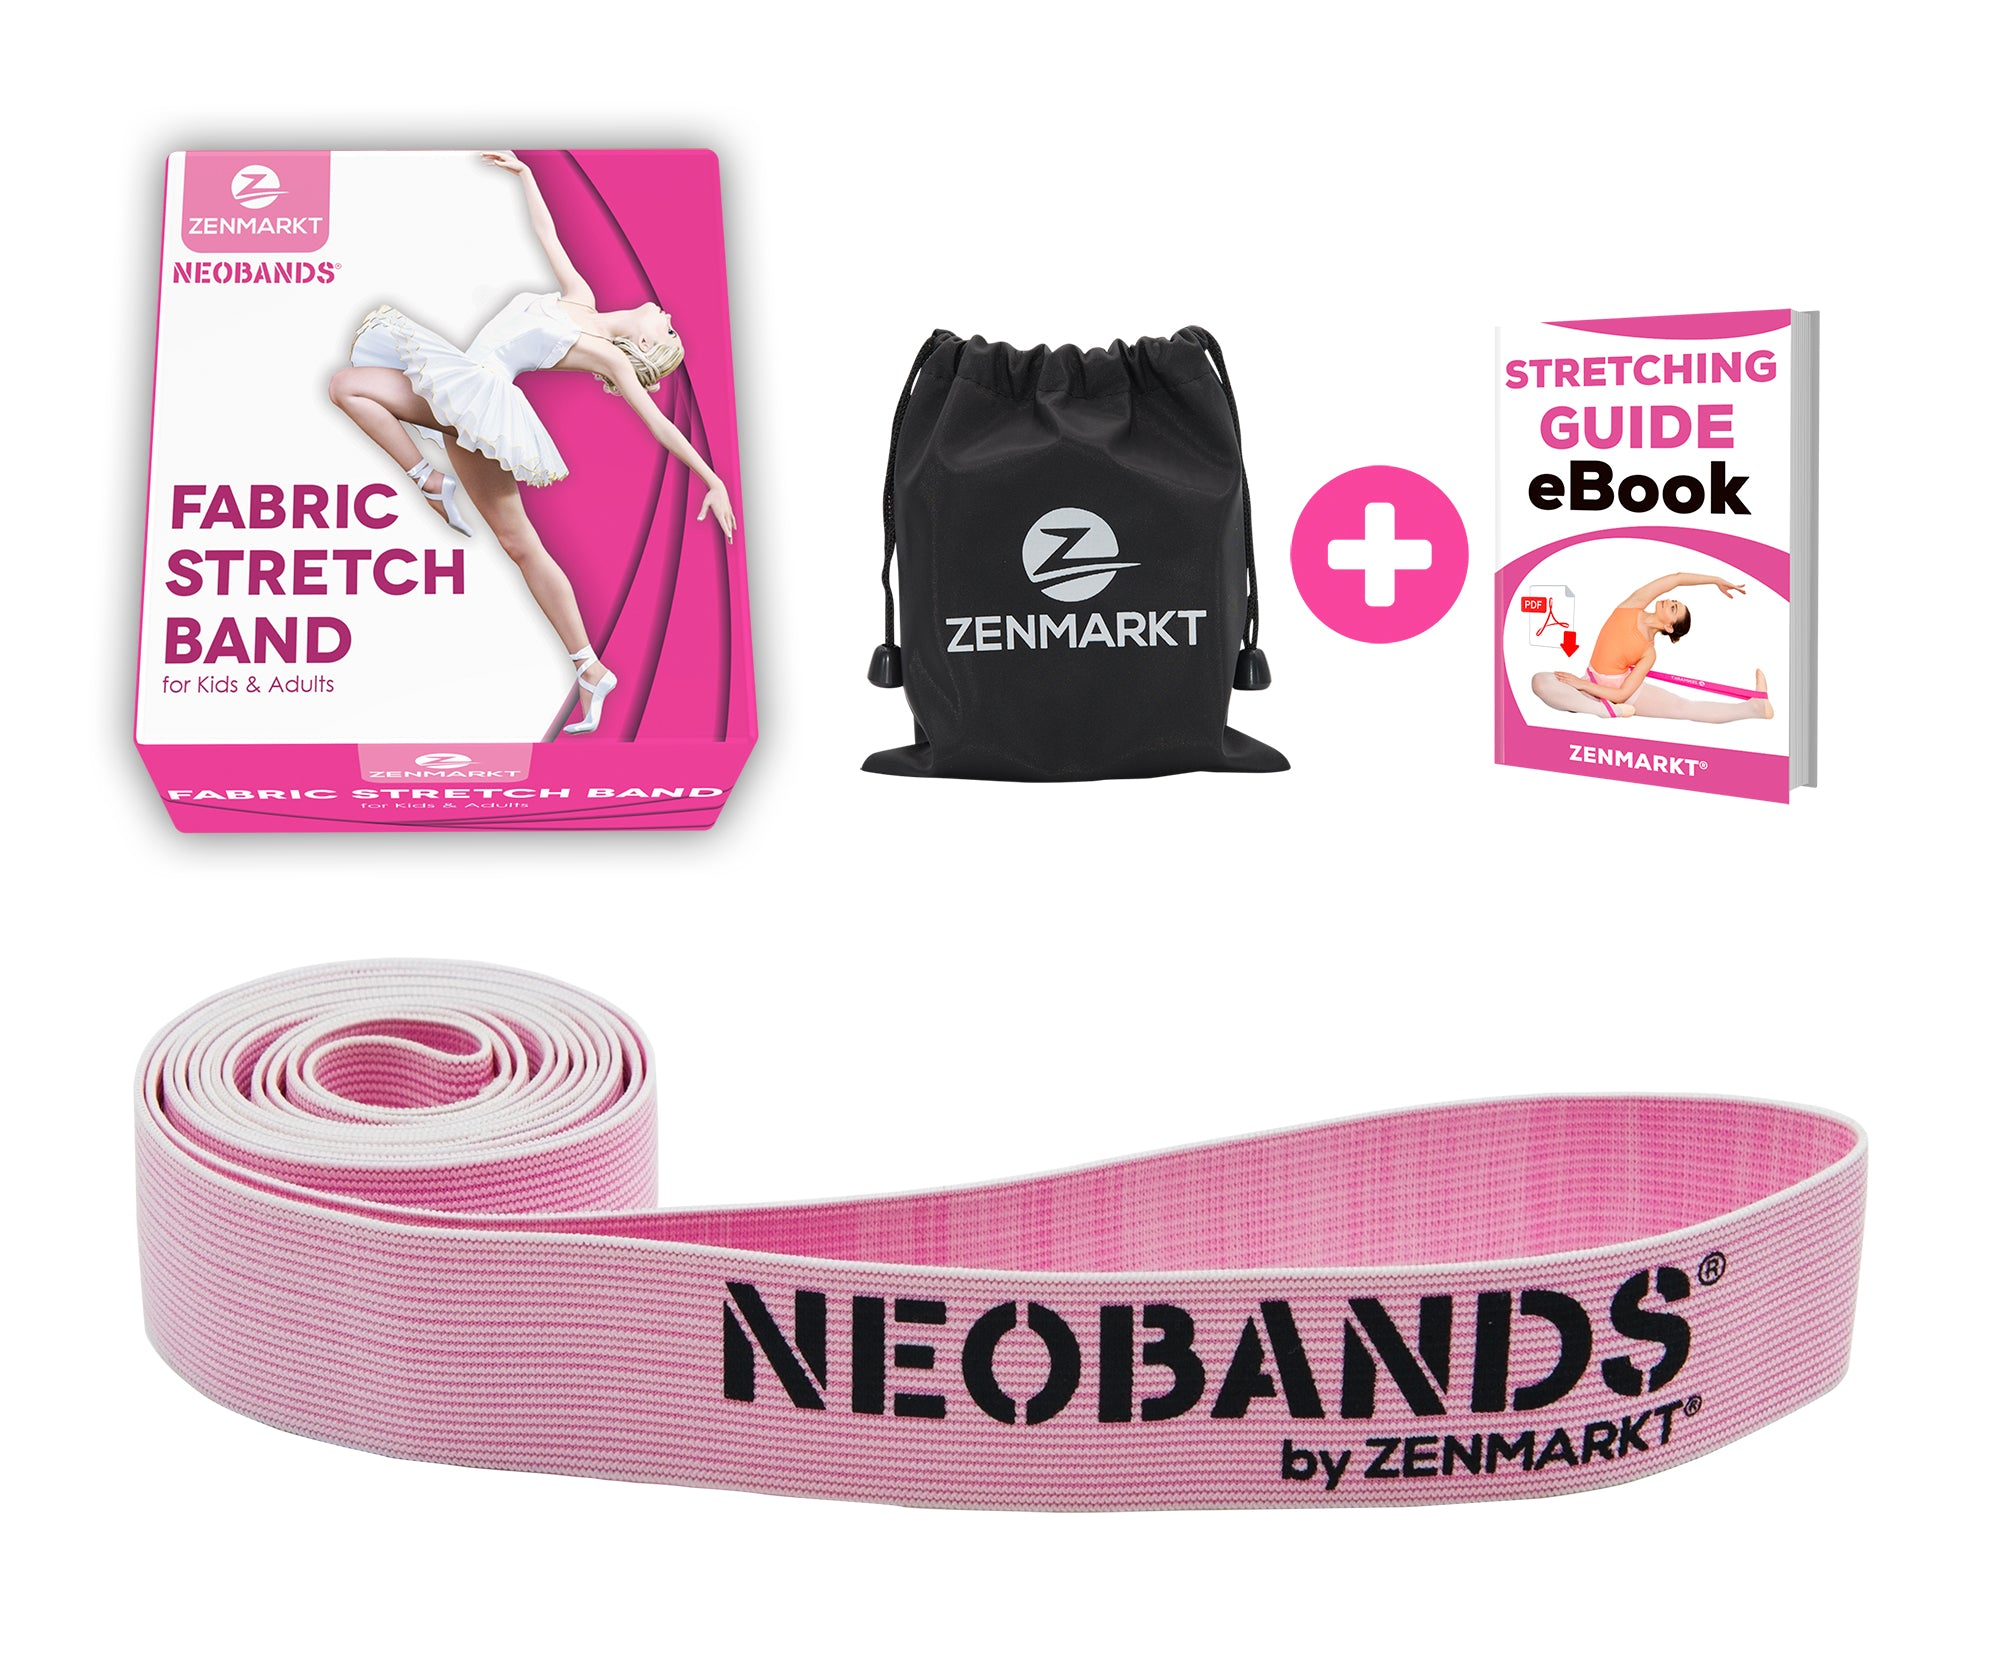 NEOBANDS Fabric Stretch Band for Dance and Ballet - Dance Stretch Bands for Flexibility - Fabric Exercise Resistance Band